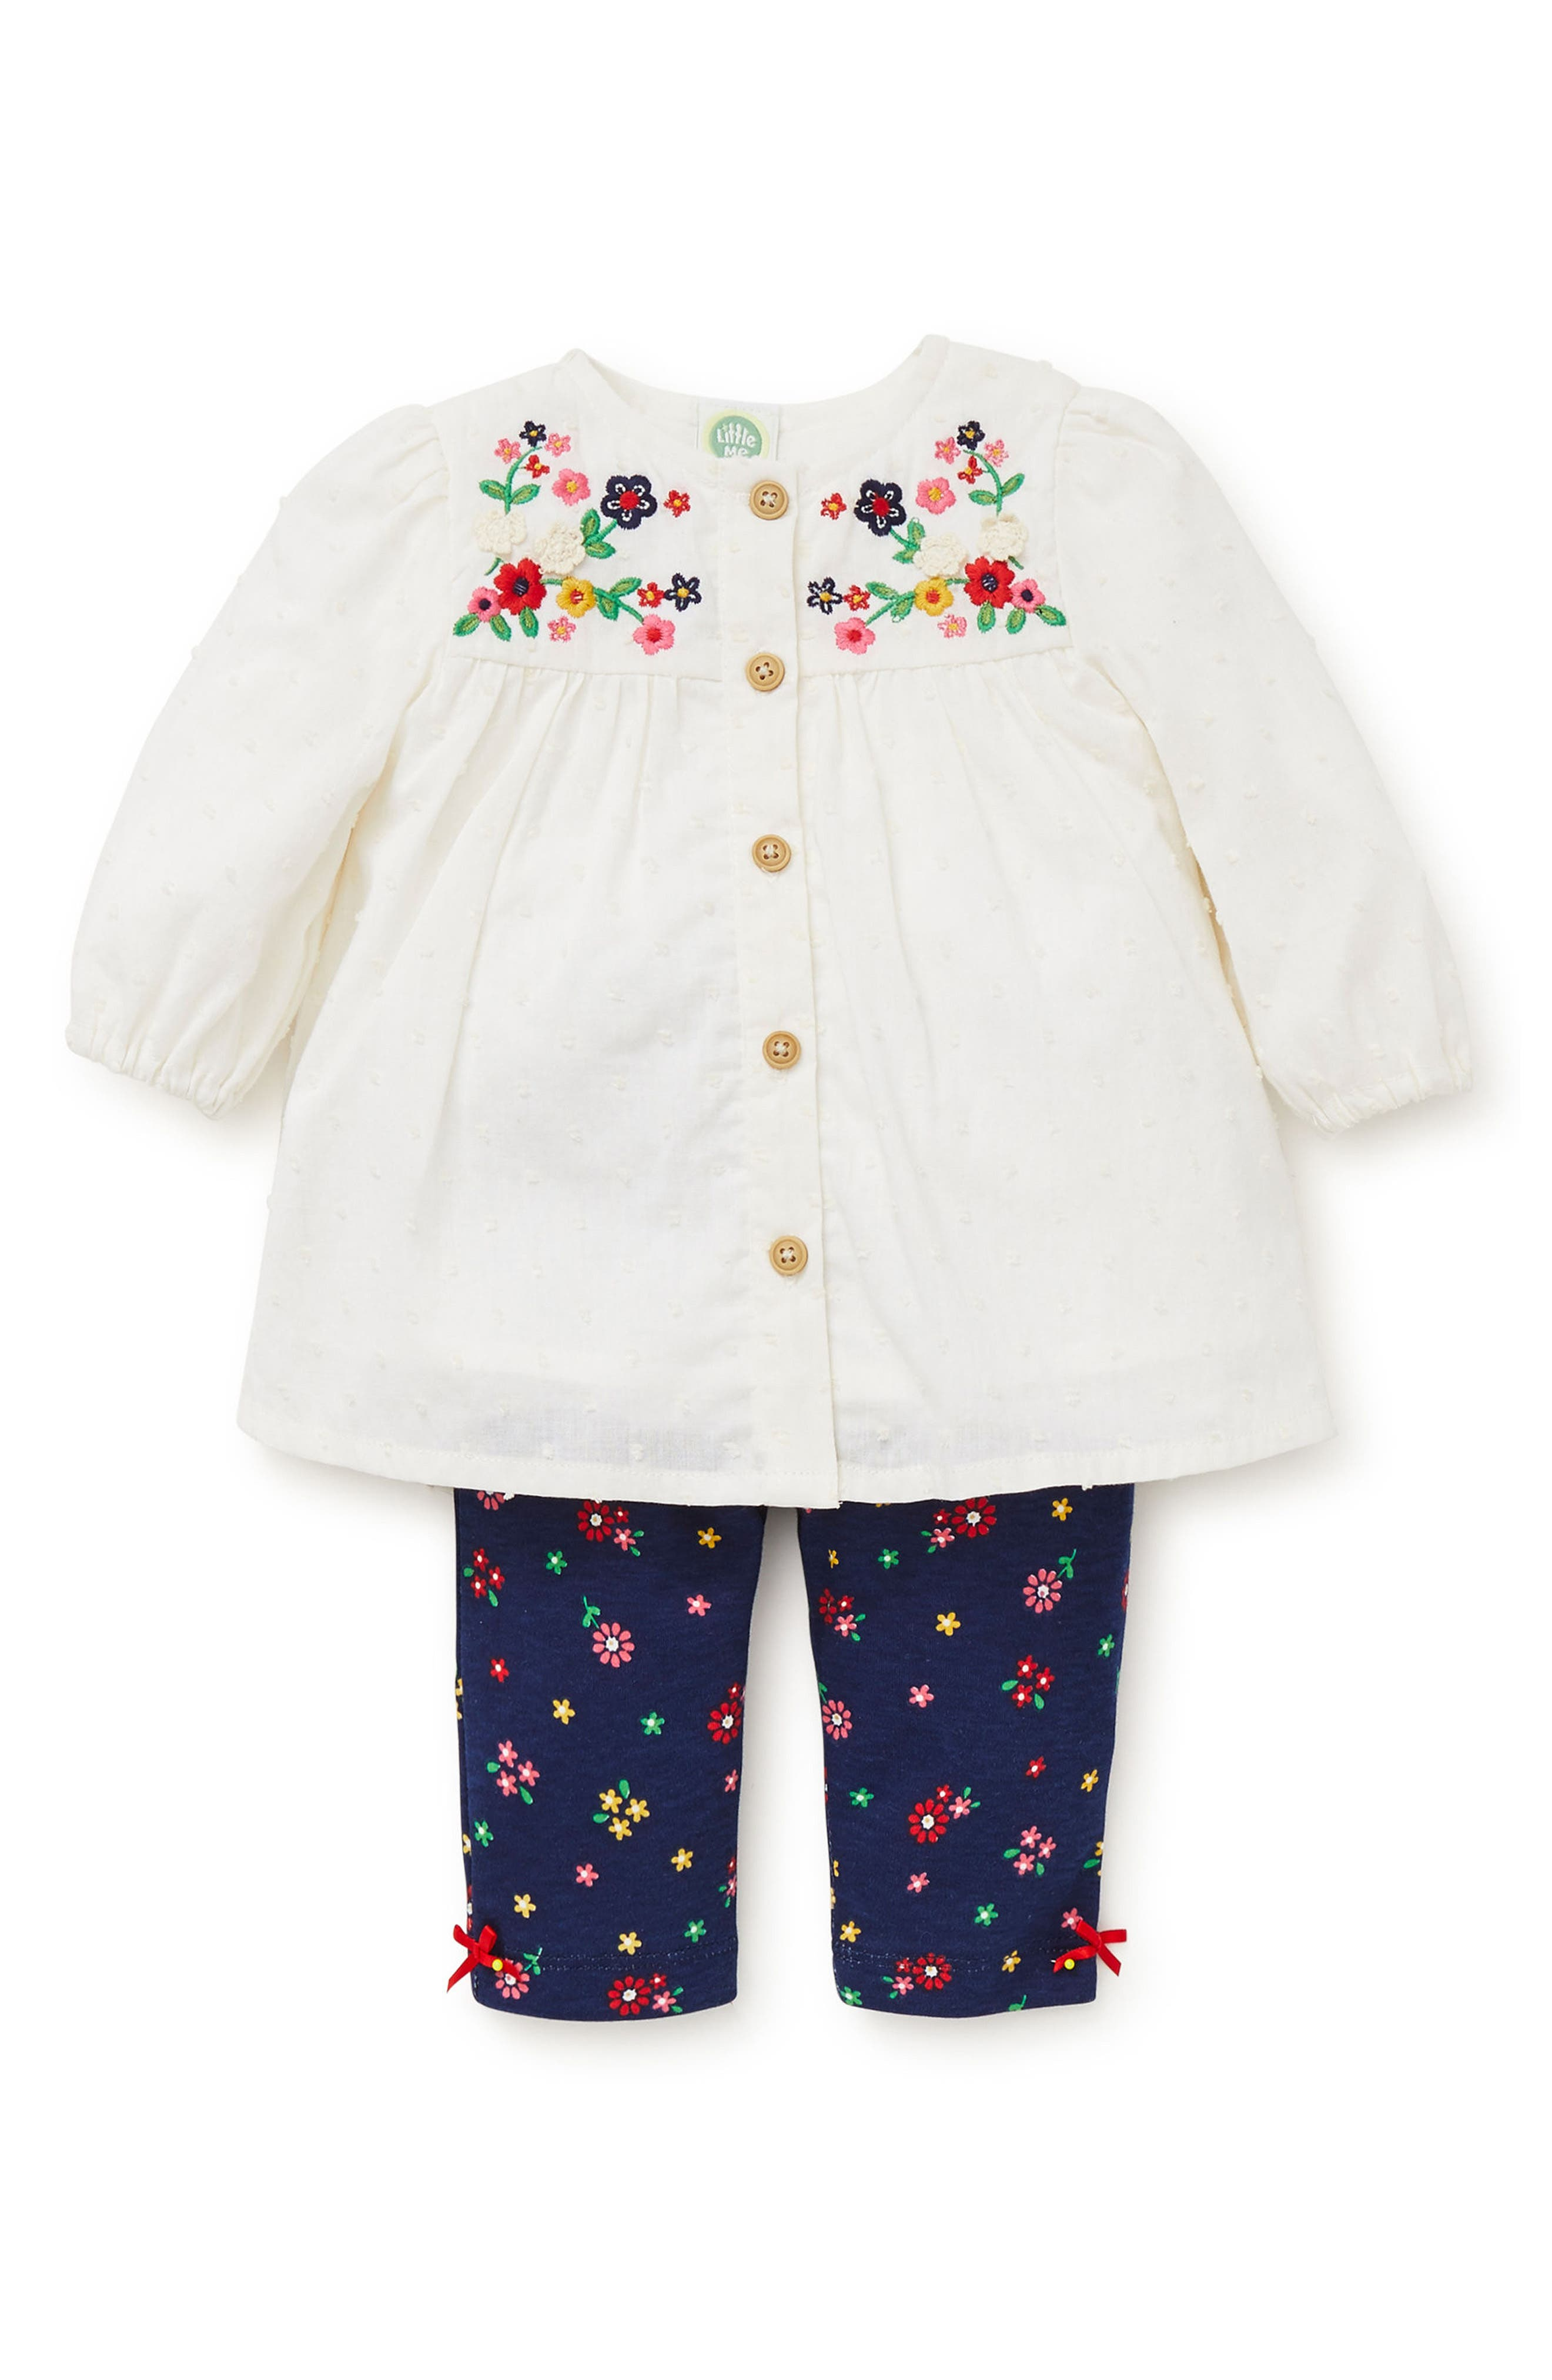 Floral Charm Embroidered Tunic & Leggings Set,                             Main thumbnail 1, color,                             479